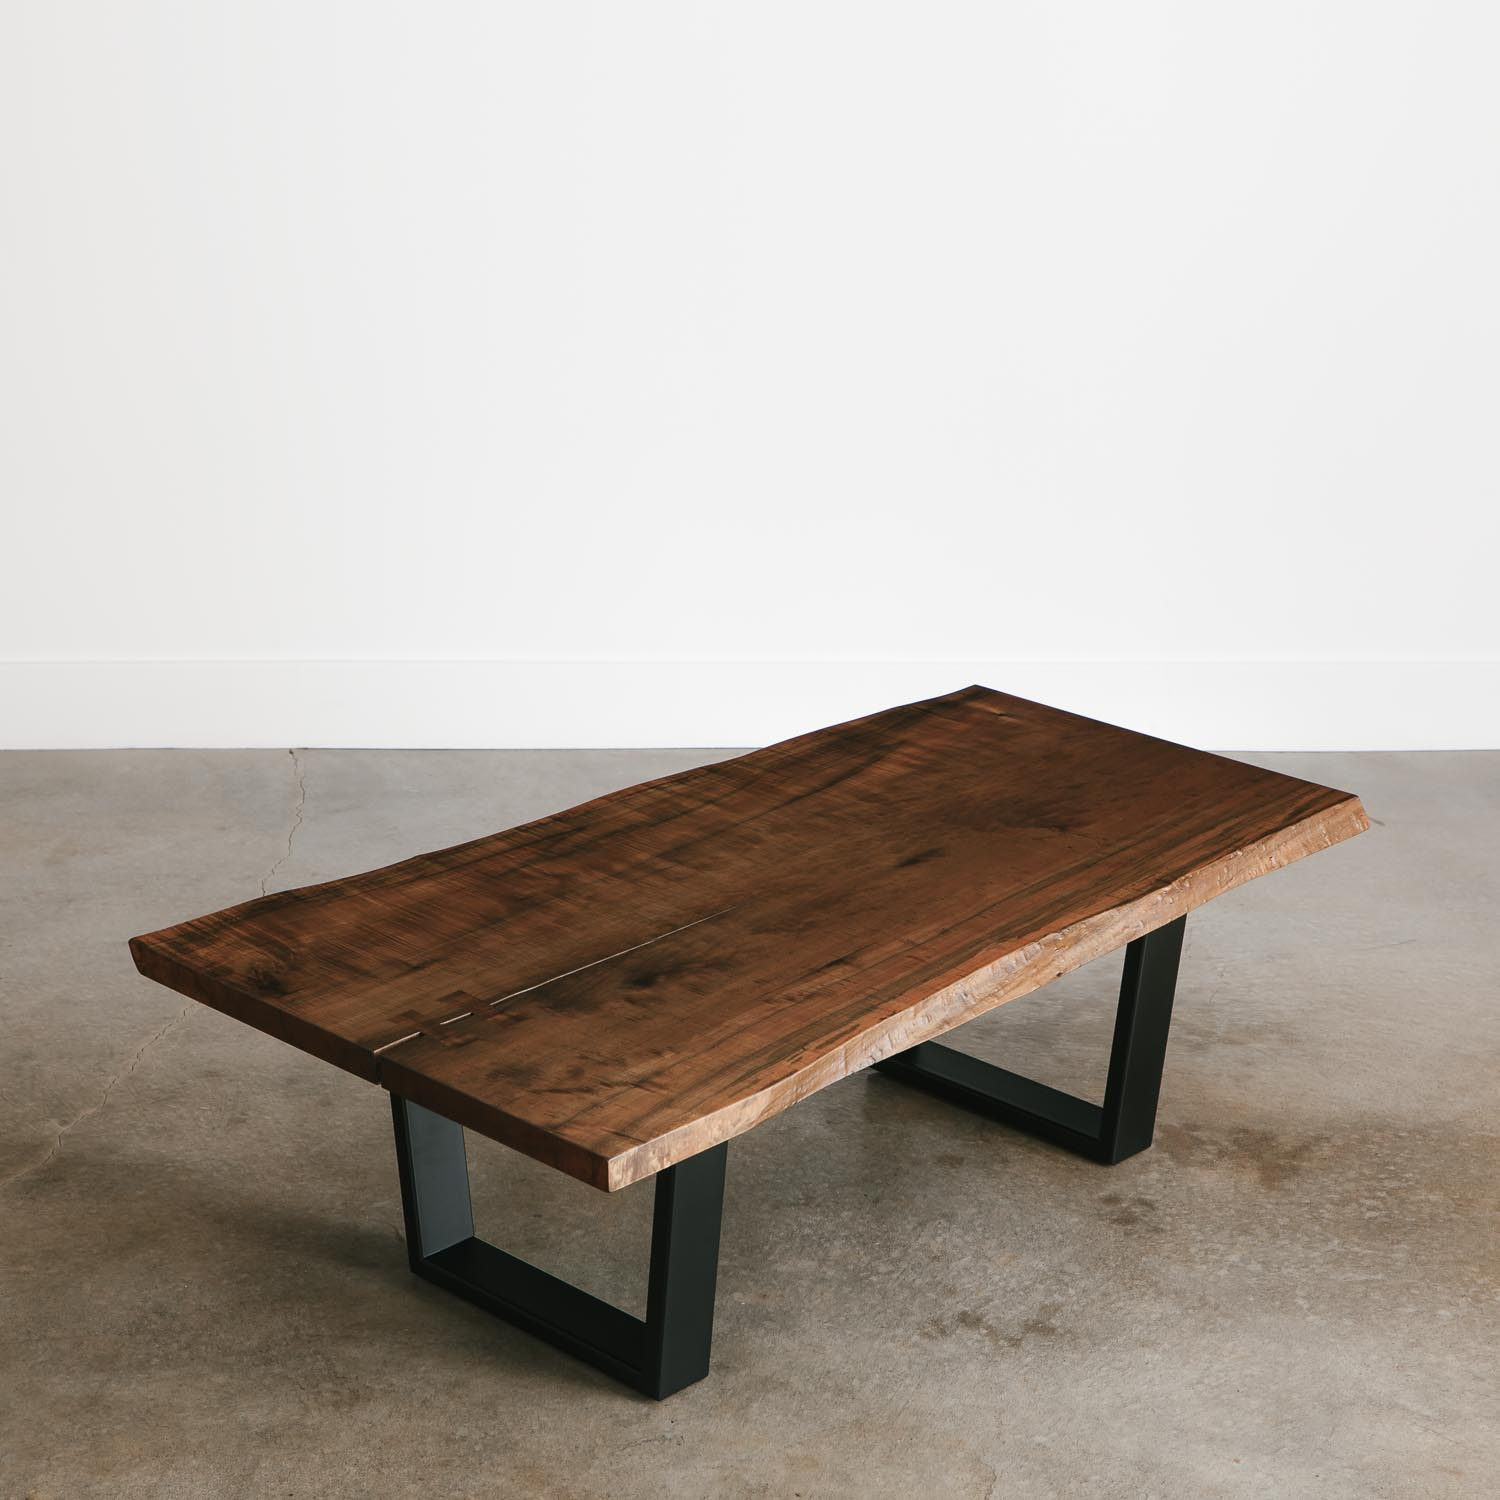 Live Edge Square Coffee Table: Ebonized Maple Coffee Table - Elko Hardwoods